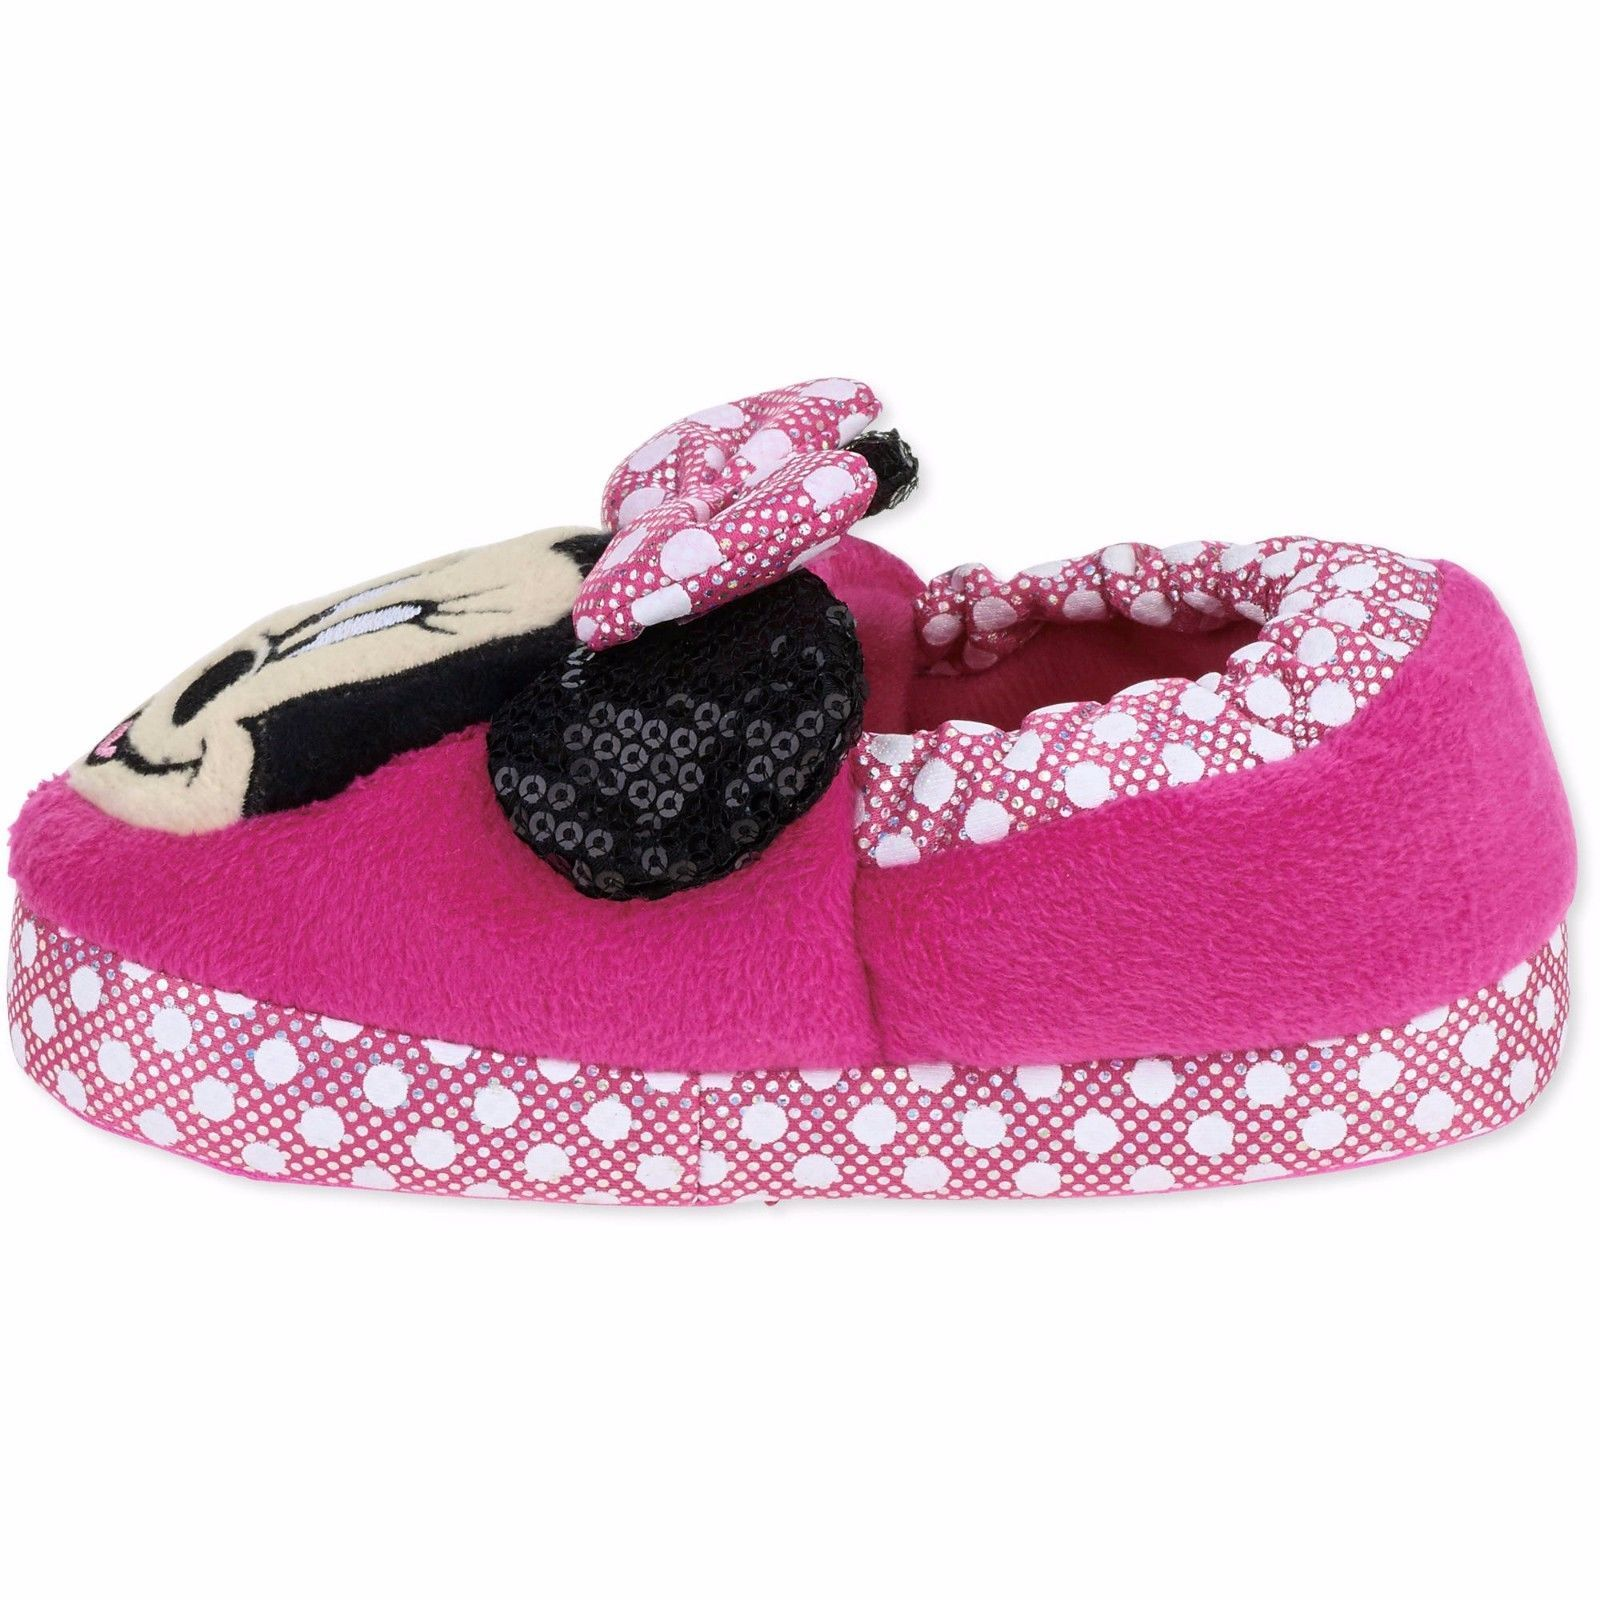 NEW Disney Junior Minnie Mouse Toddler Child Slippers 11/12